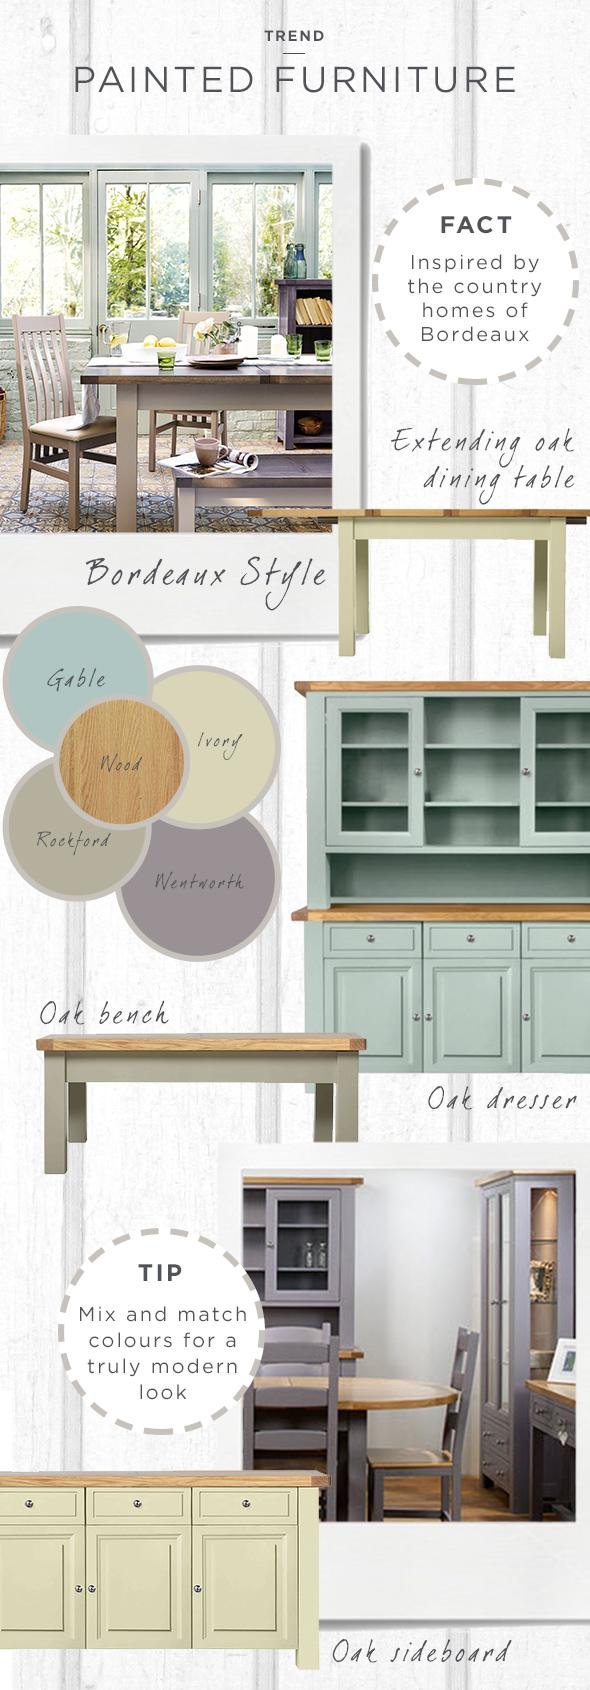 bordeaux painted furniture trend